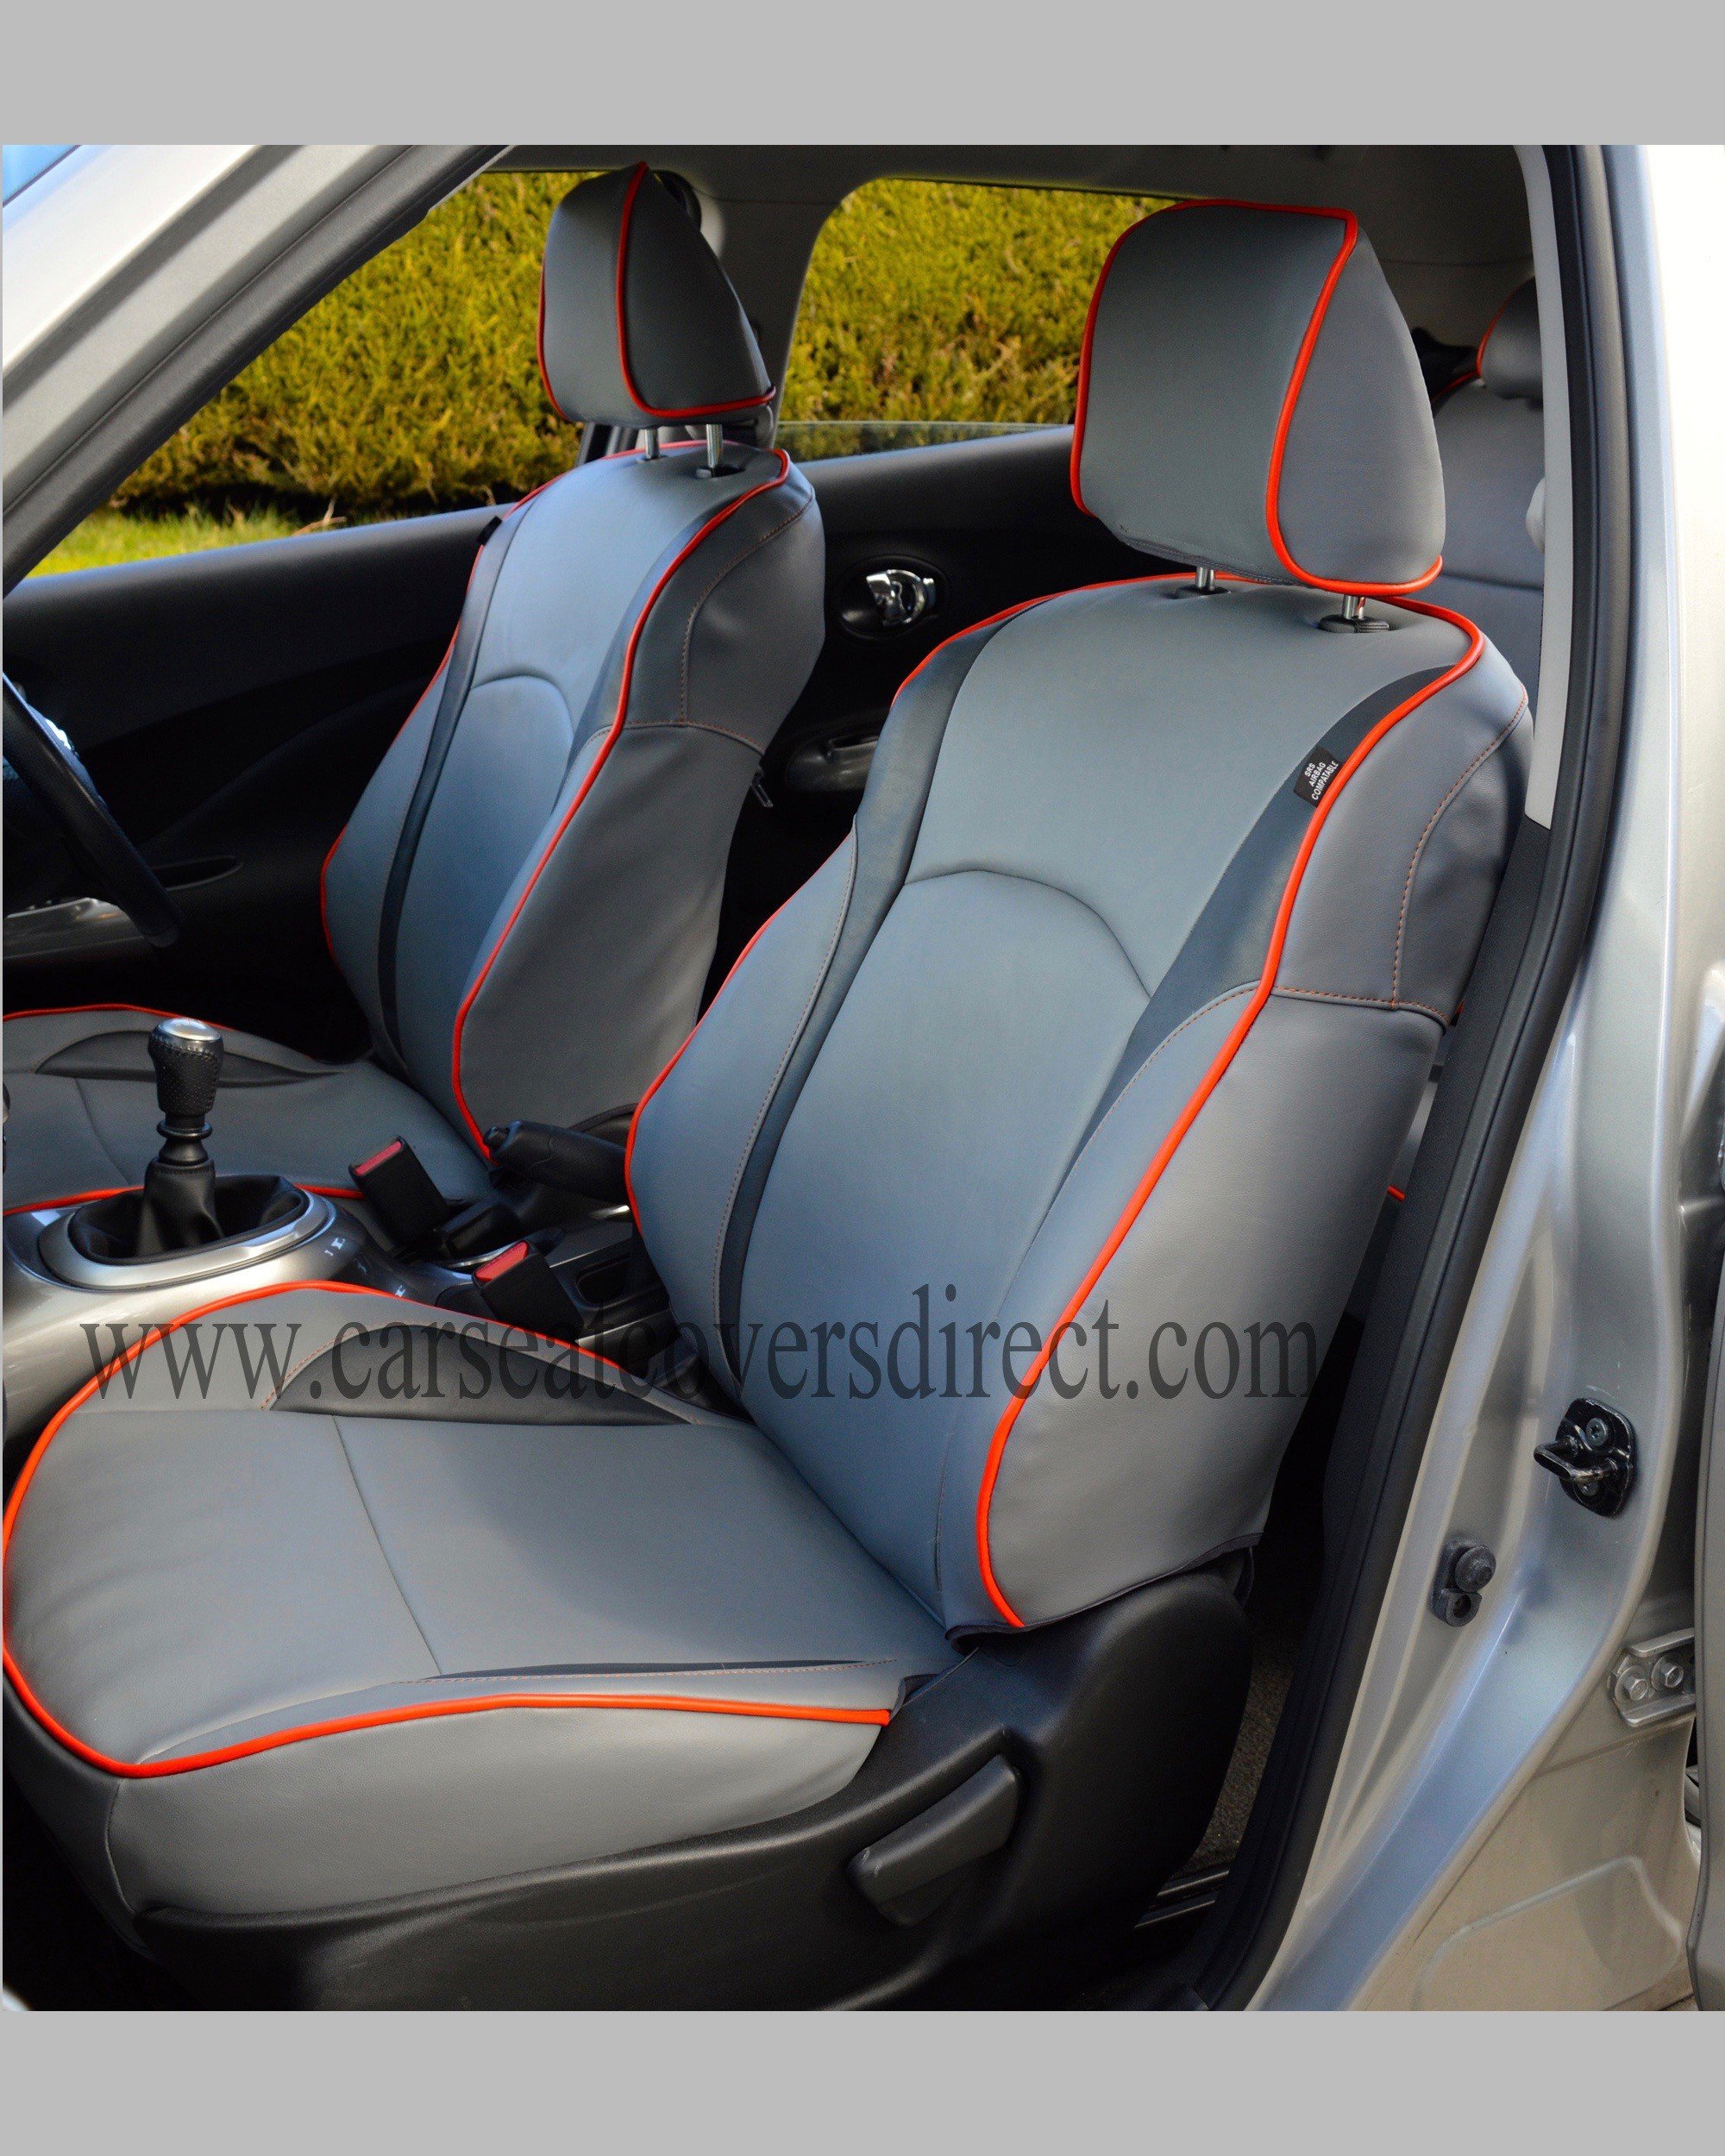 NISSAN JUKE Grey Seat Covers